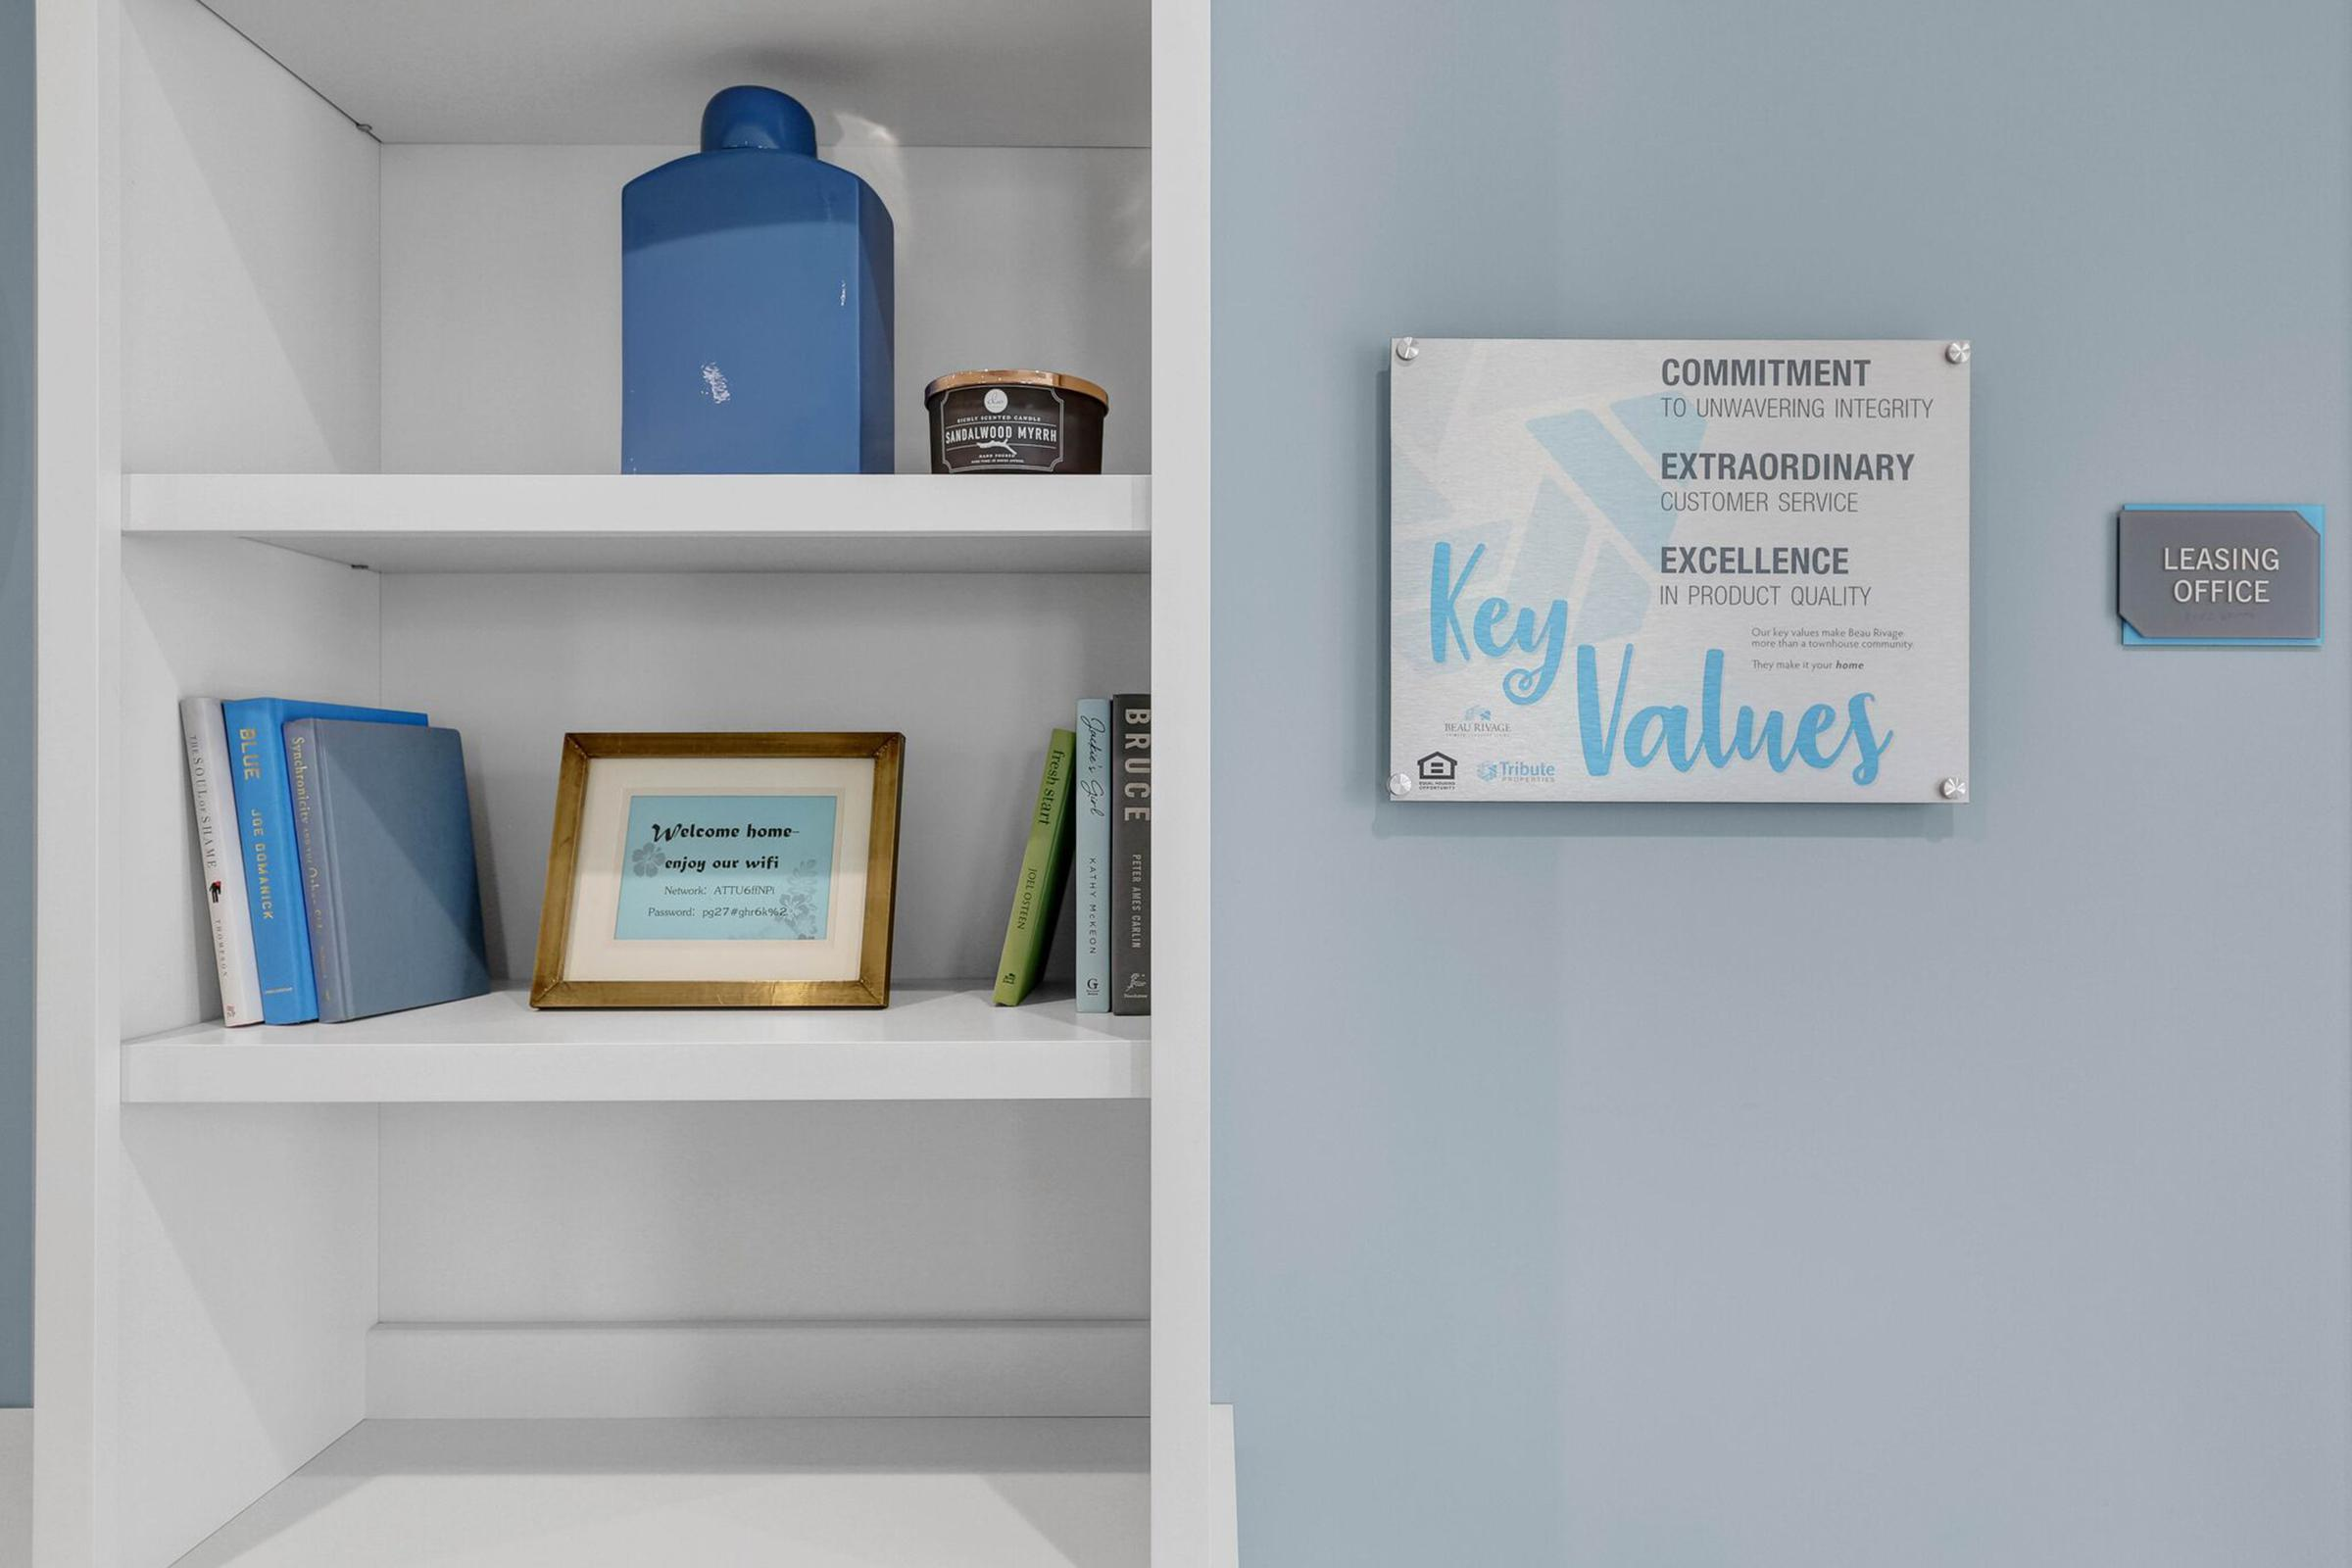 a blue and white sign on a shelf